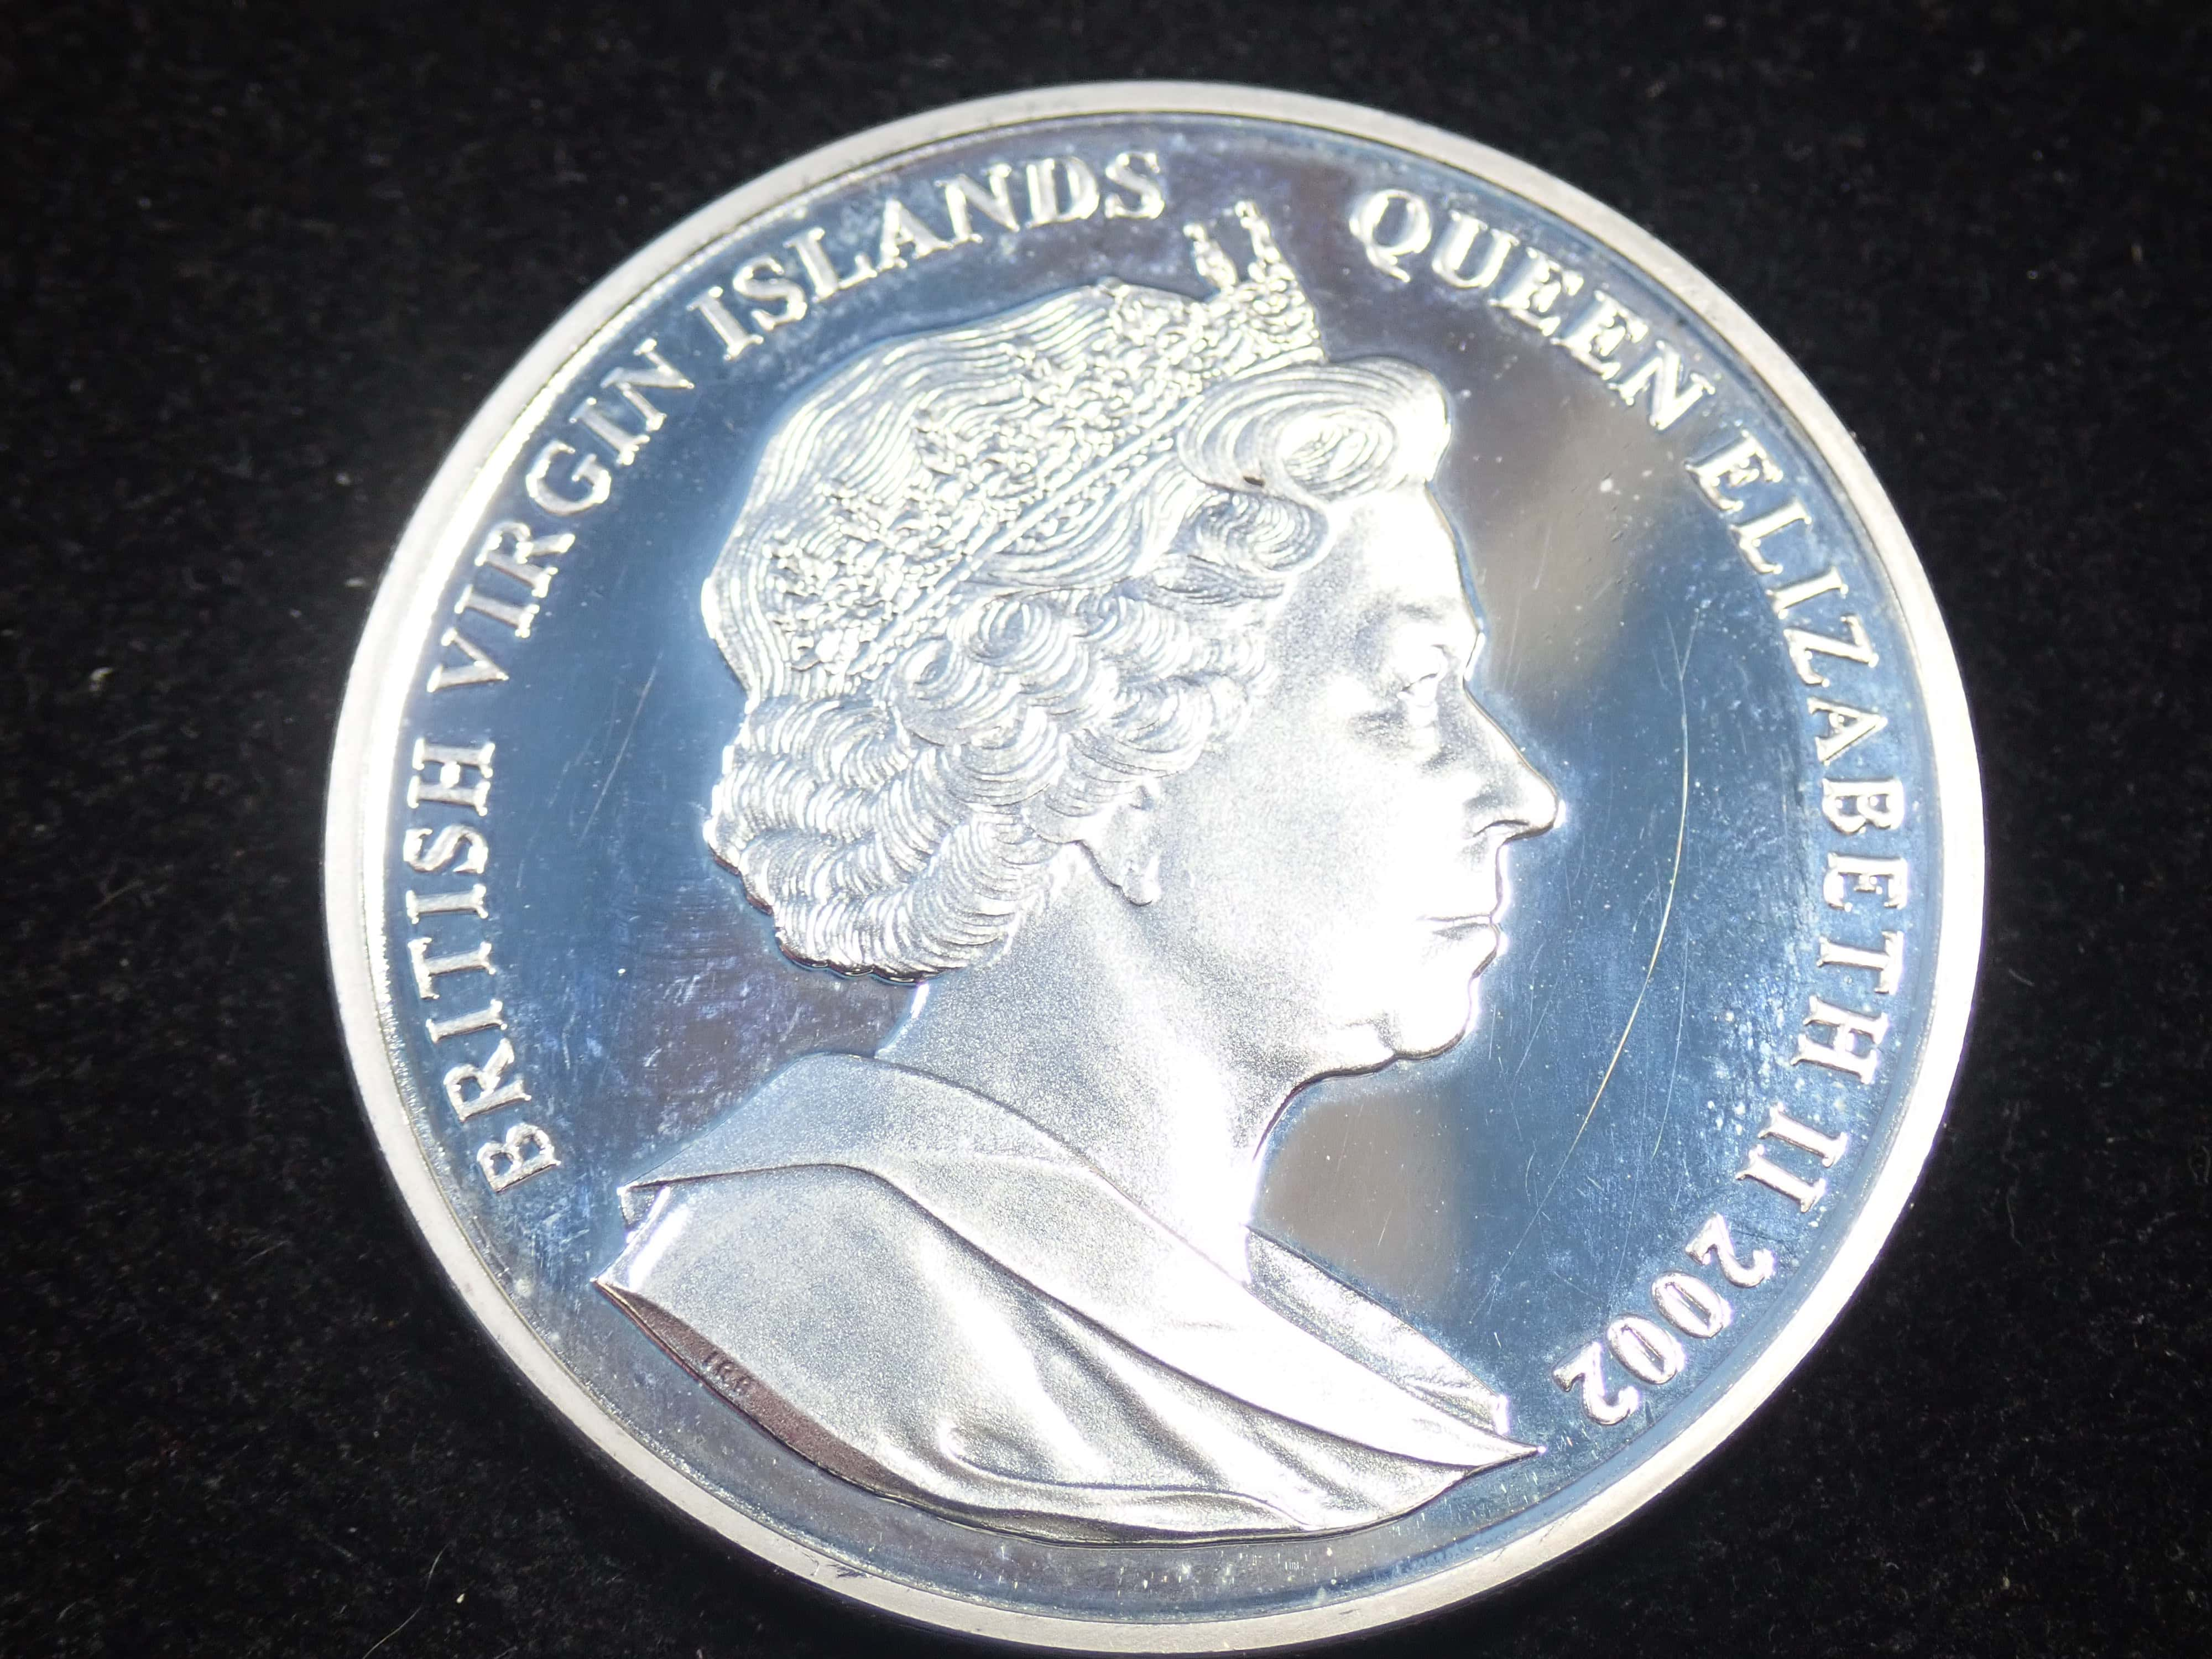 AZZ00831 - Proof 10 Dollar - Elizabeth II Queen Mother & Young Prince Charles 925 Silver Coin British Virgin Islands #21